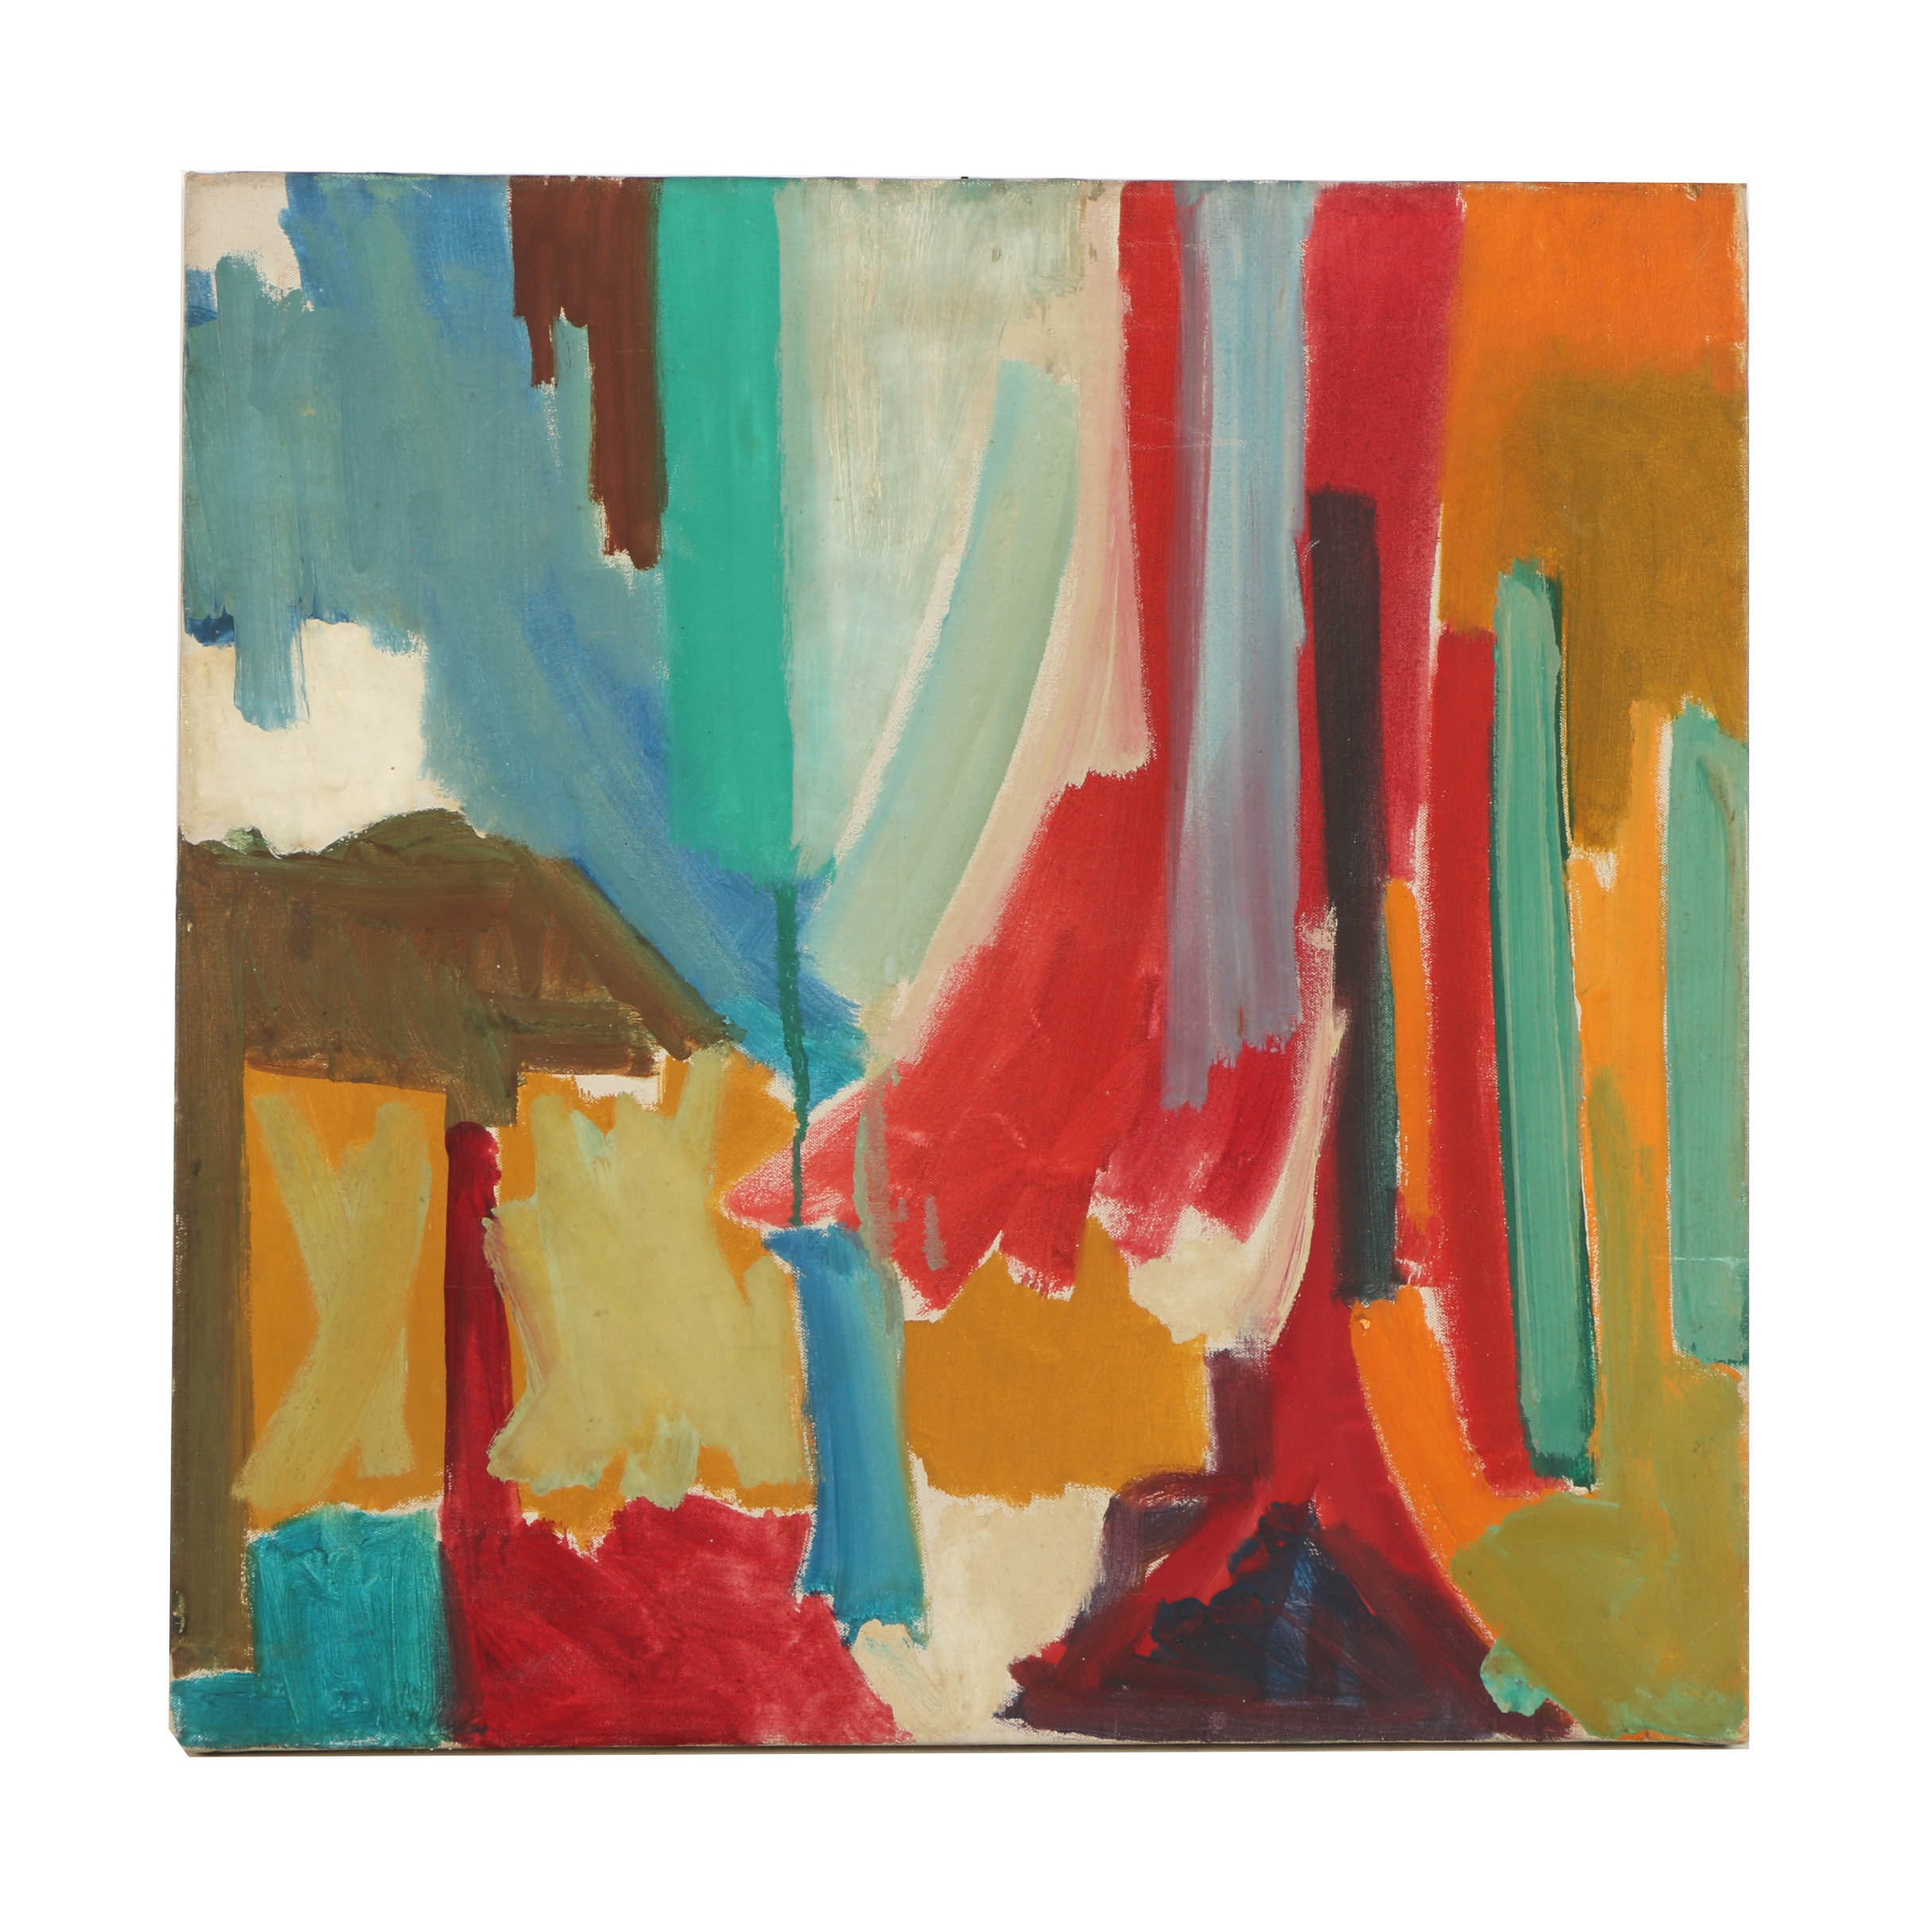 Oil Painting on Canvas of Abstract Composition